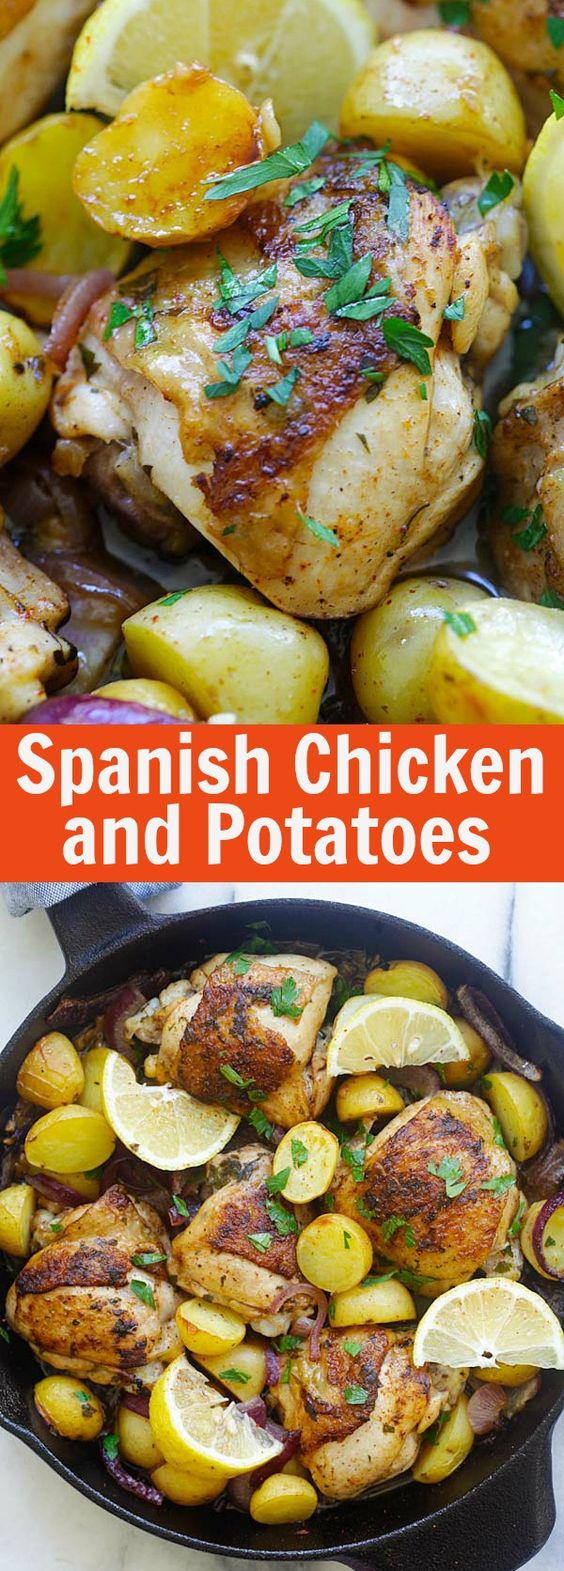 Spanish Chicken and Potatoes - crazy delicious one-pot Spanish chicken and potatoes bake with onions, garlic, and paprika. So good! | rasamalaysia.com